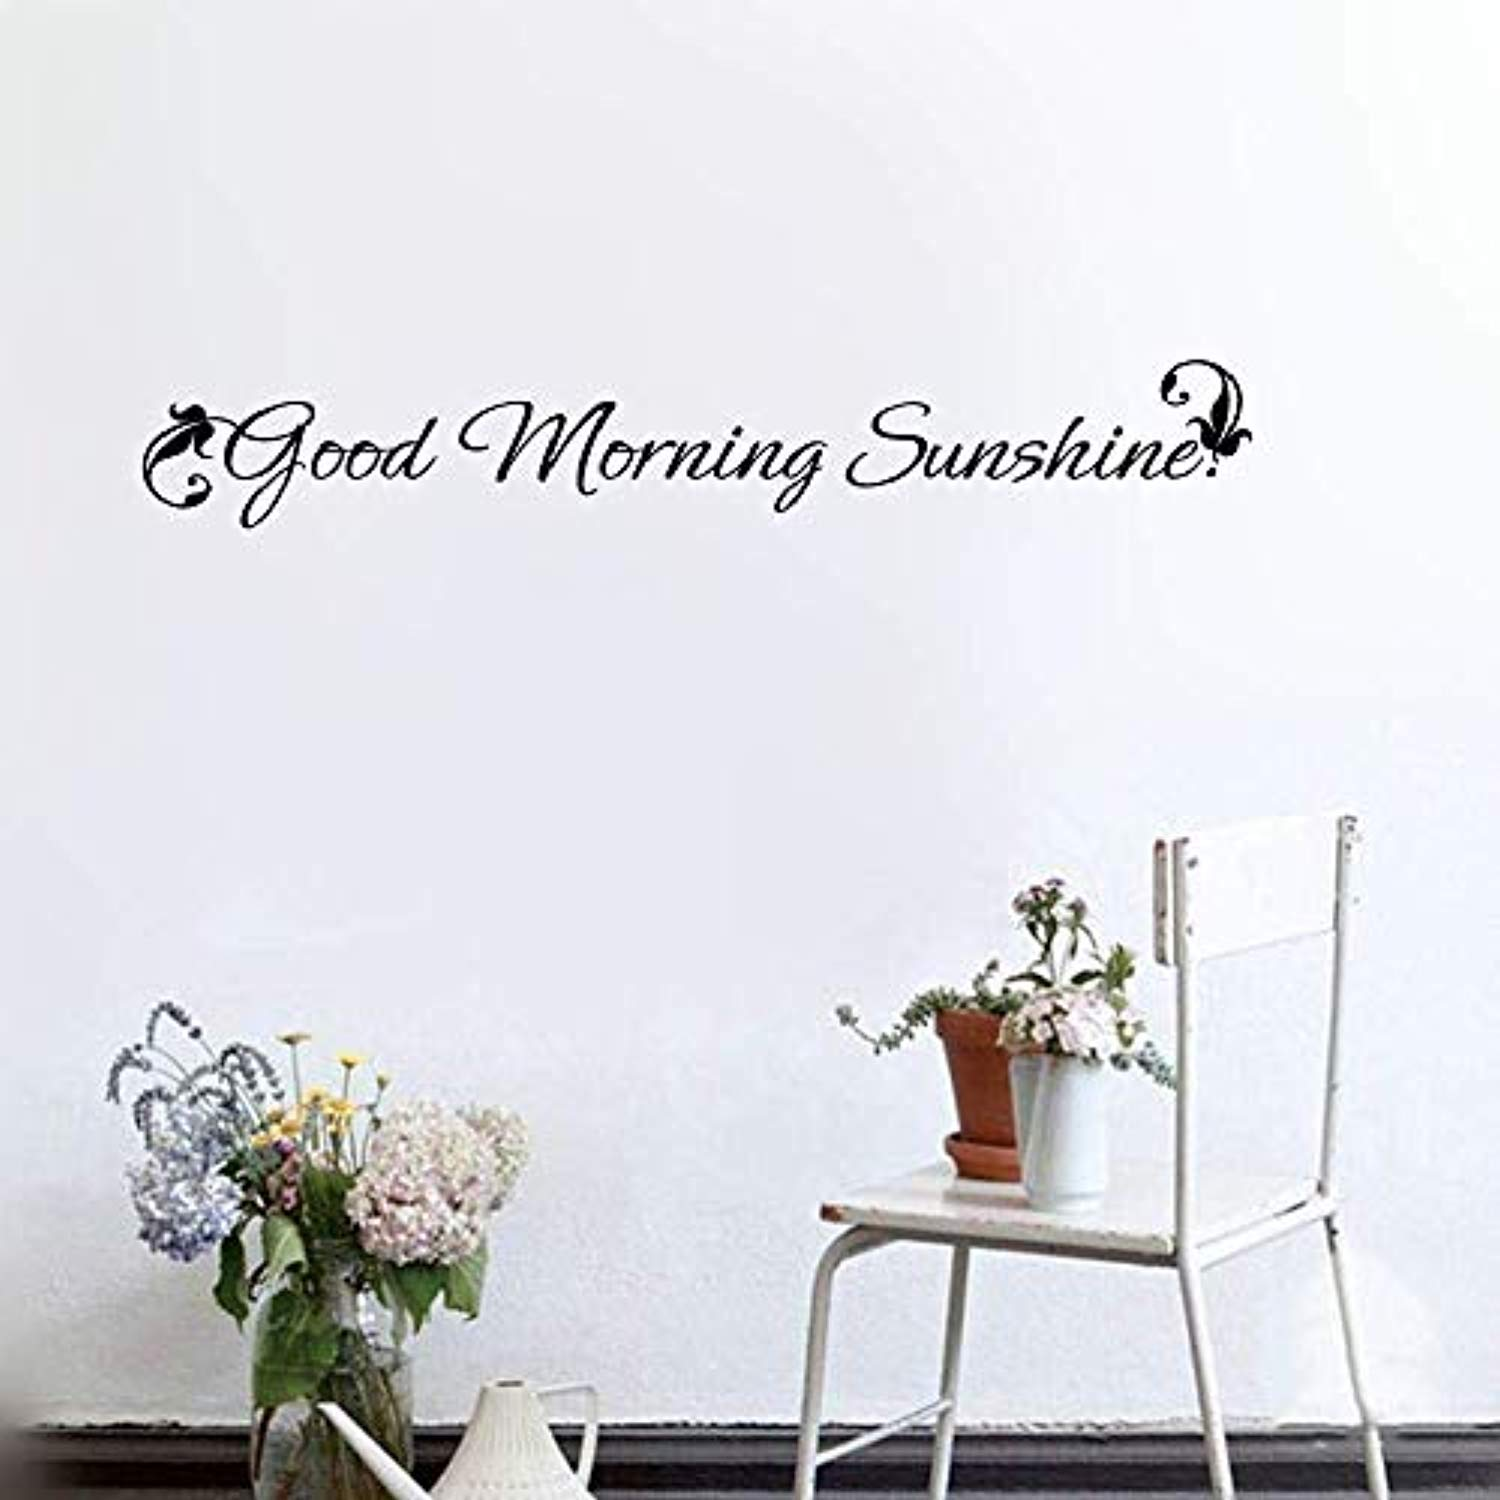 Removable Decal Good Morning Sunshine Decal Written Wall Decals Mural Decor Vinyl Sticker Sk2048 W35 H5 Baby